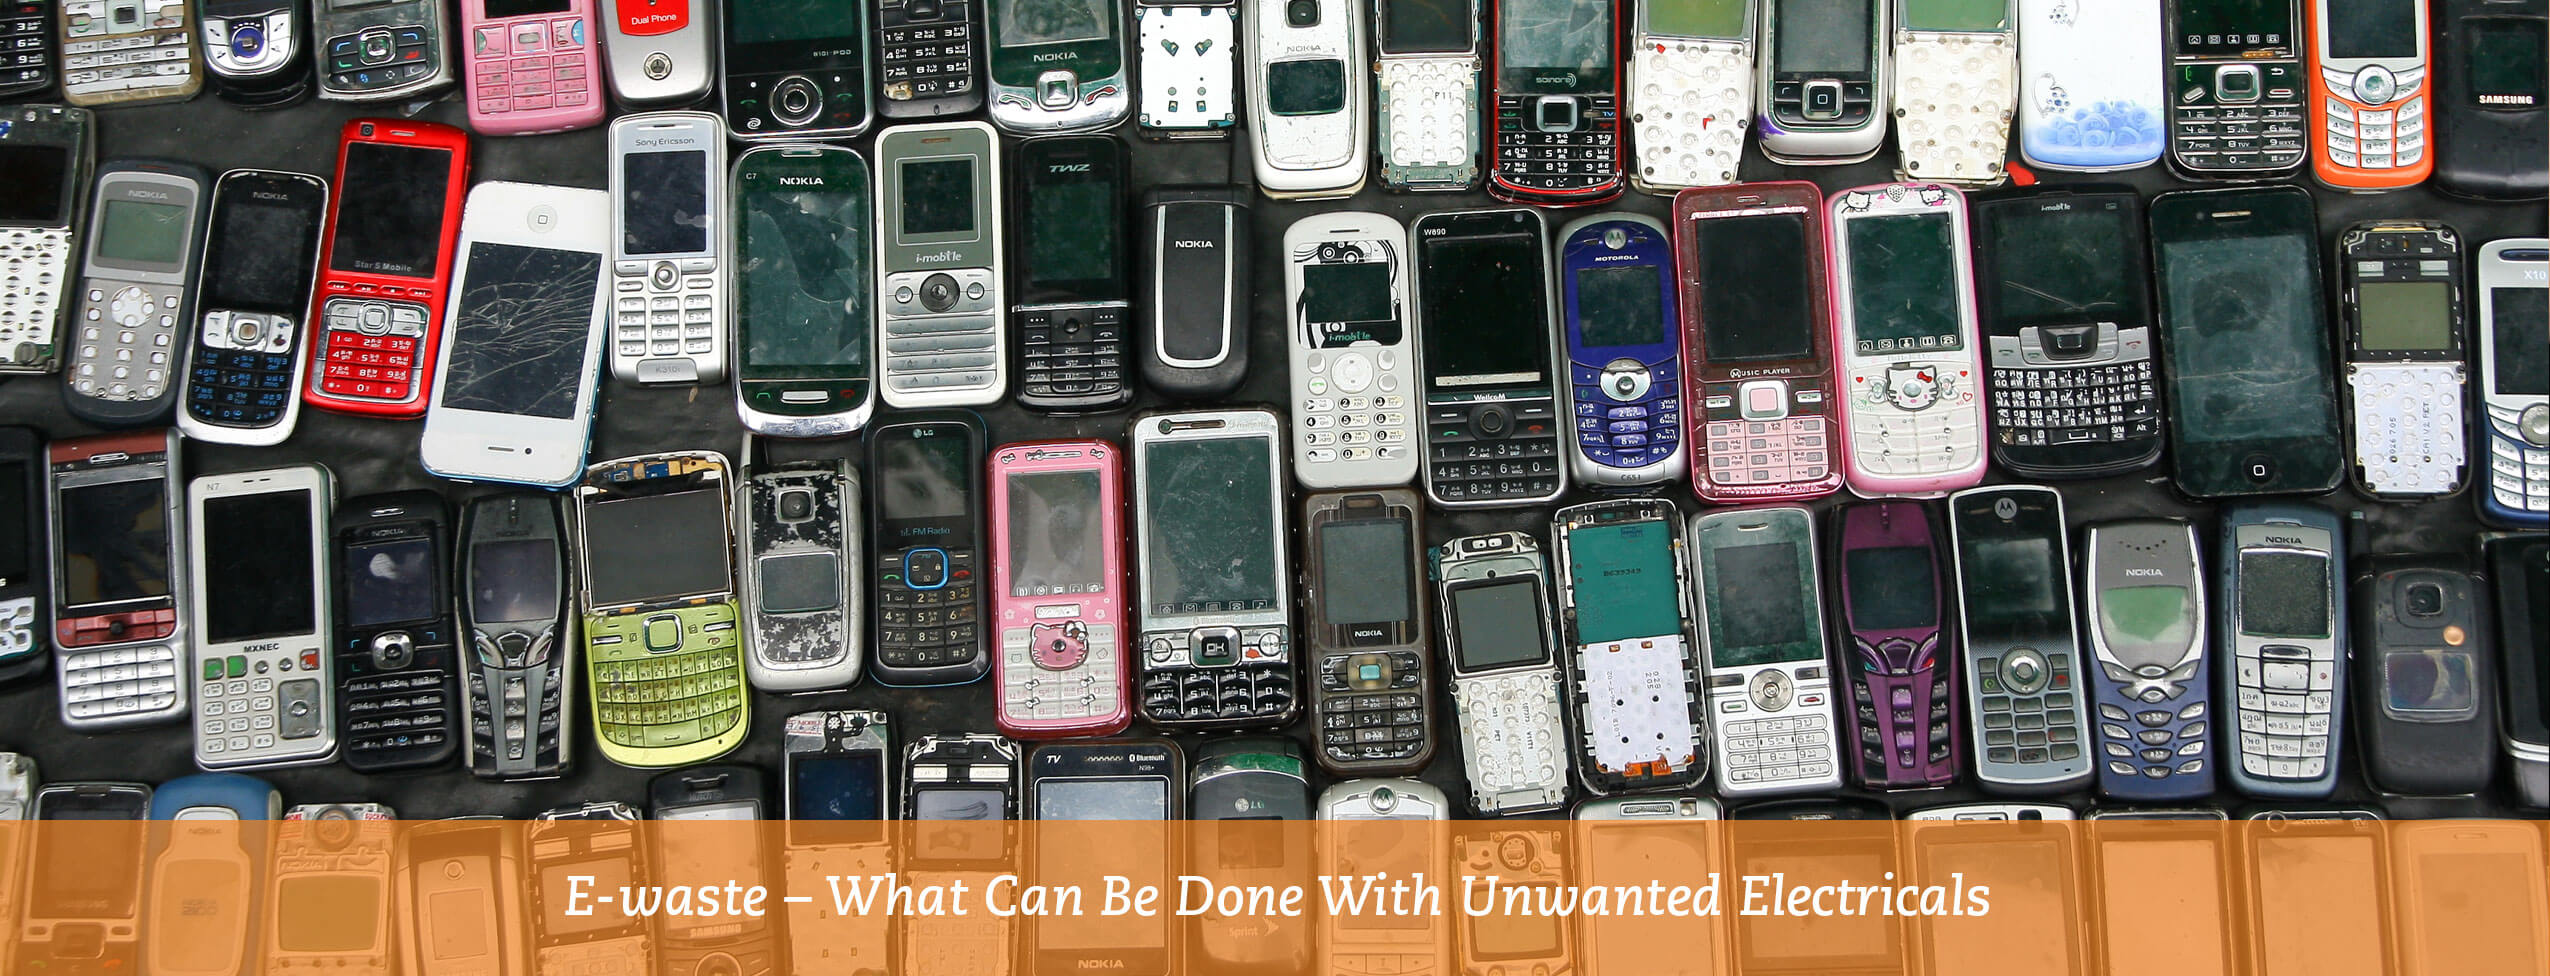 lots of old mobile phones to be recycled